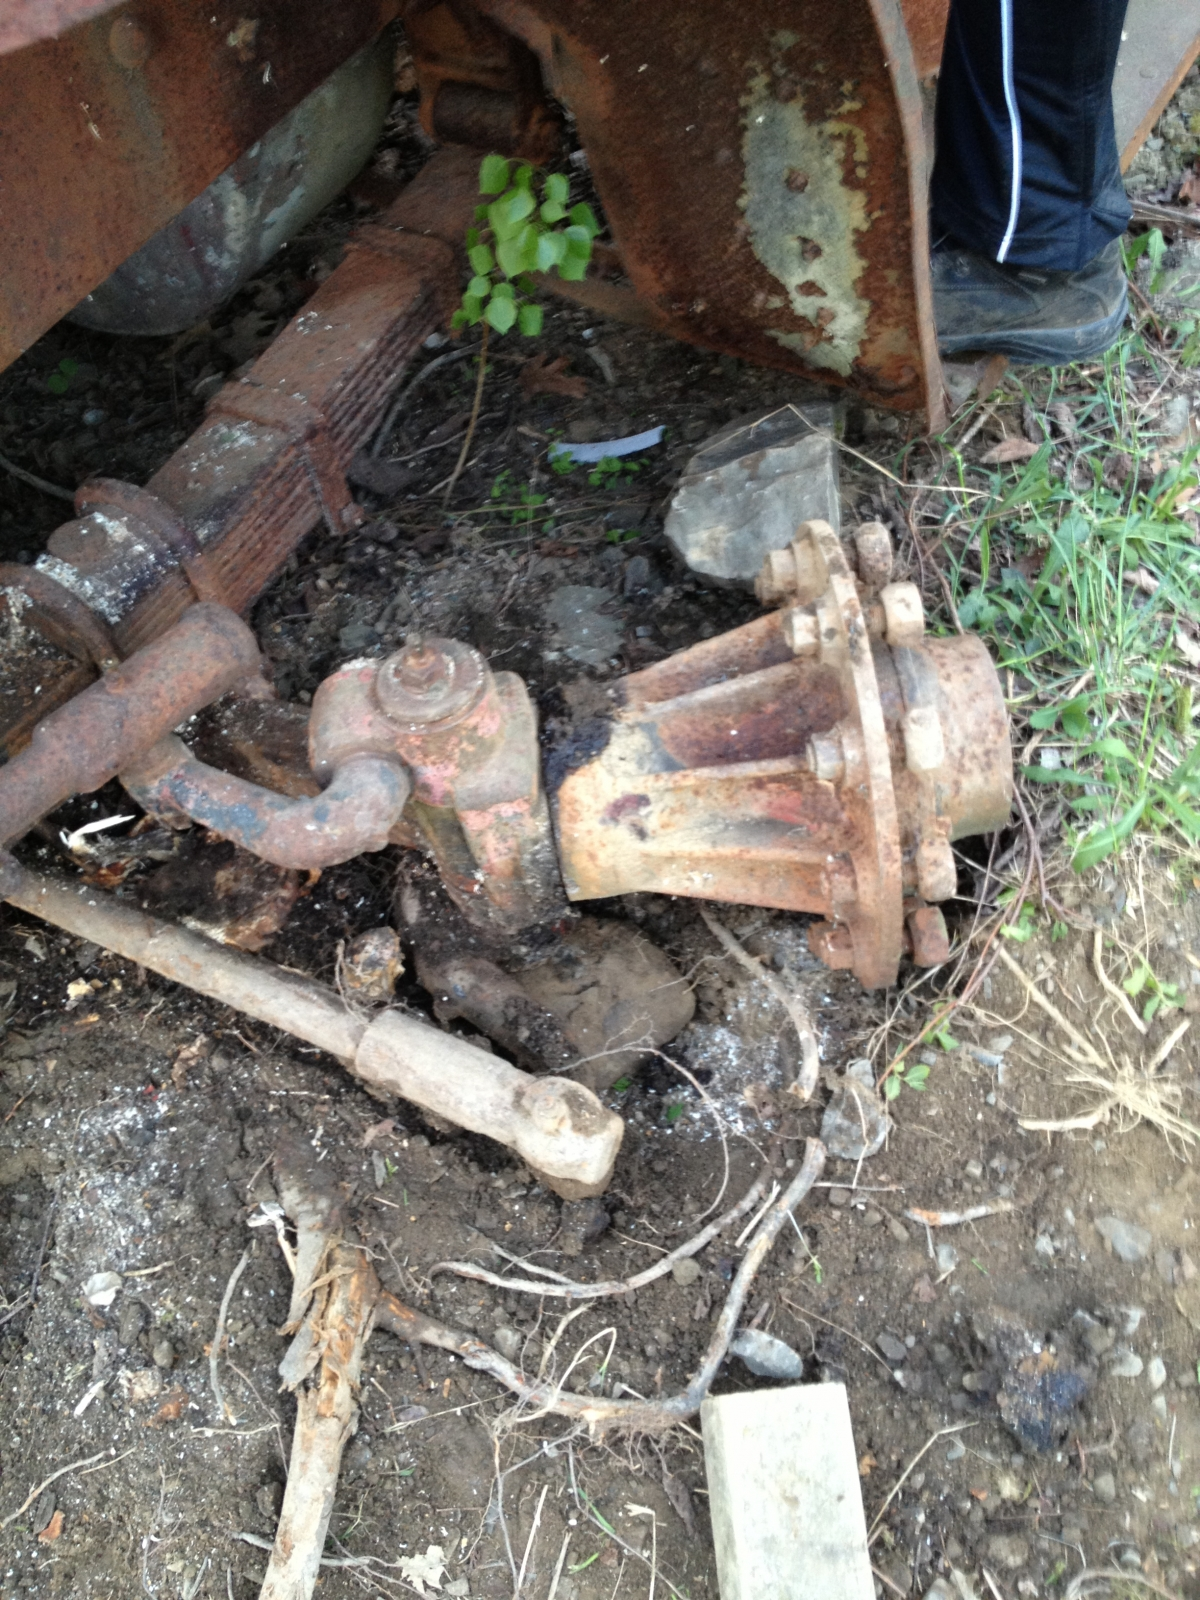 Budd spindles and hubs.  Turned freely when we dug it out.  Steering worked too!